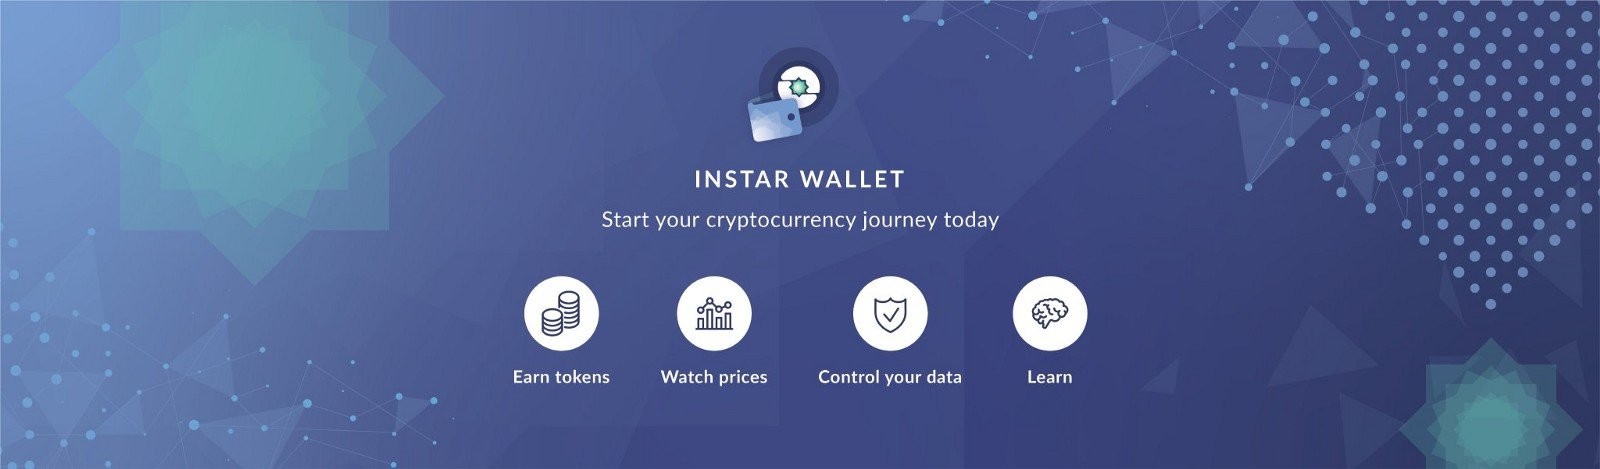 earn crypto for free 2019